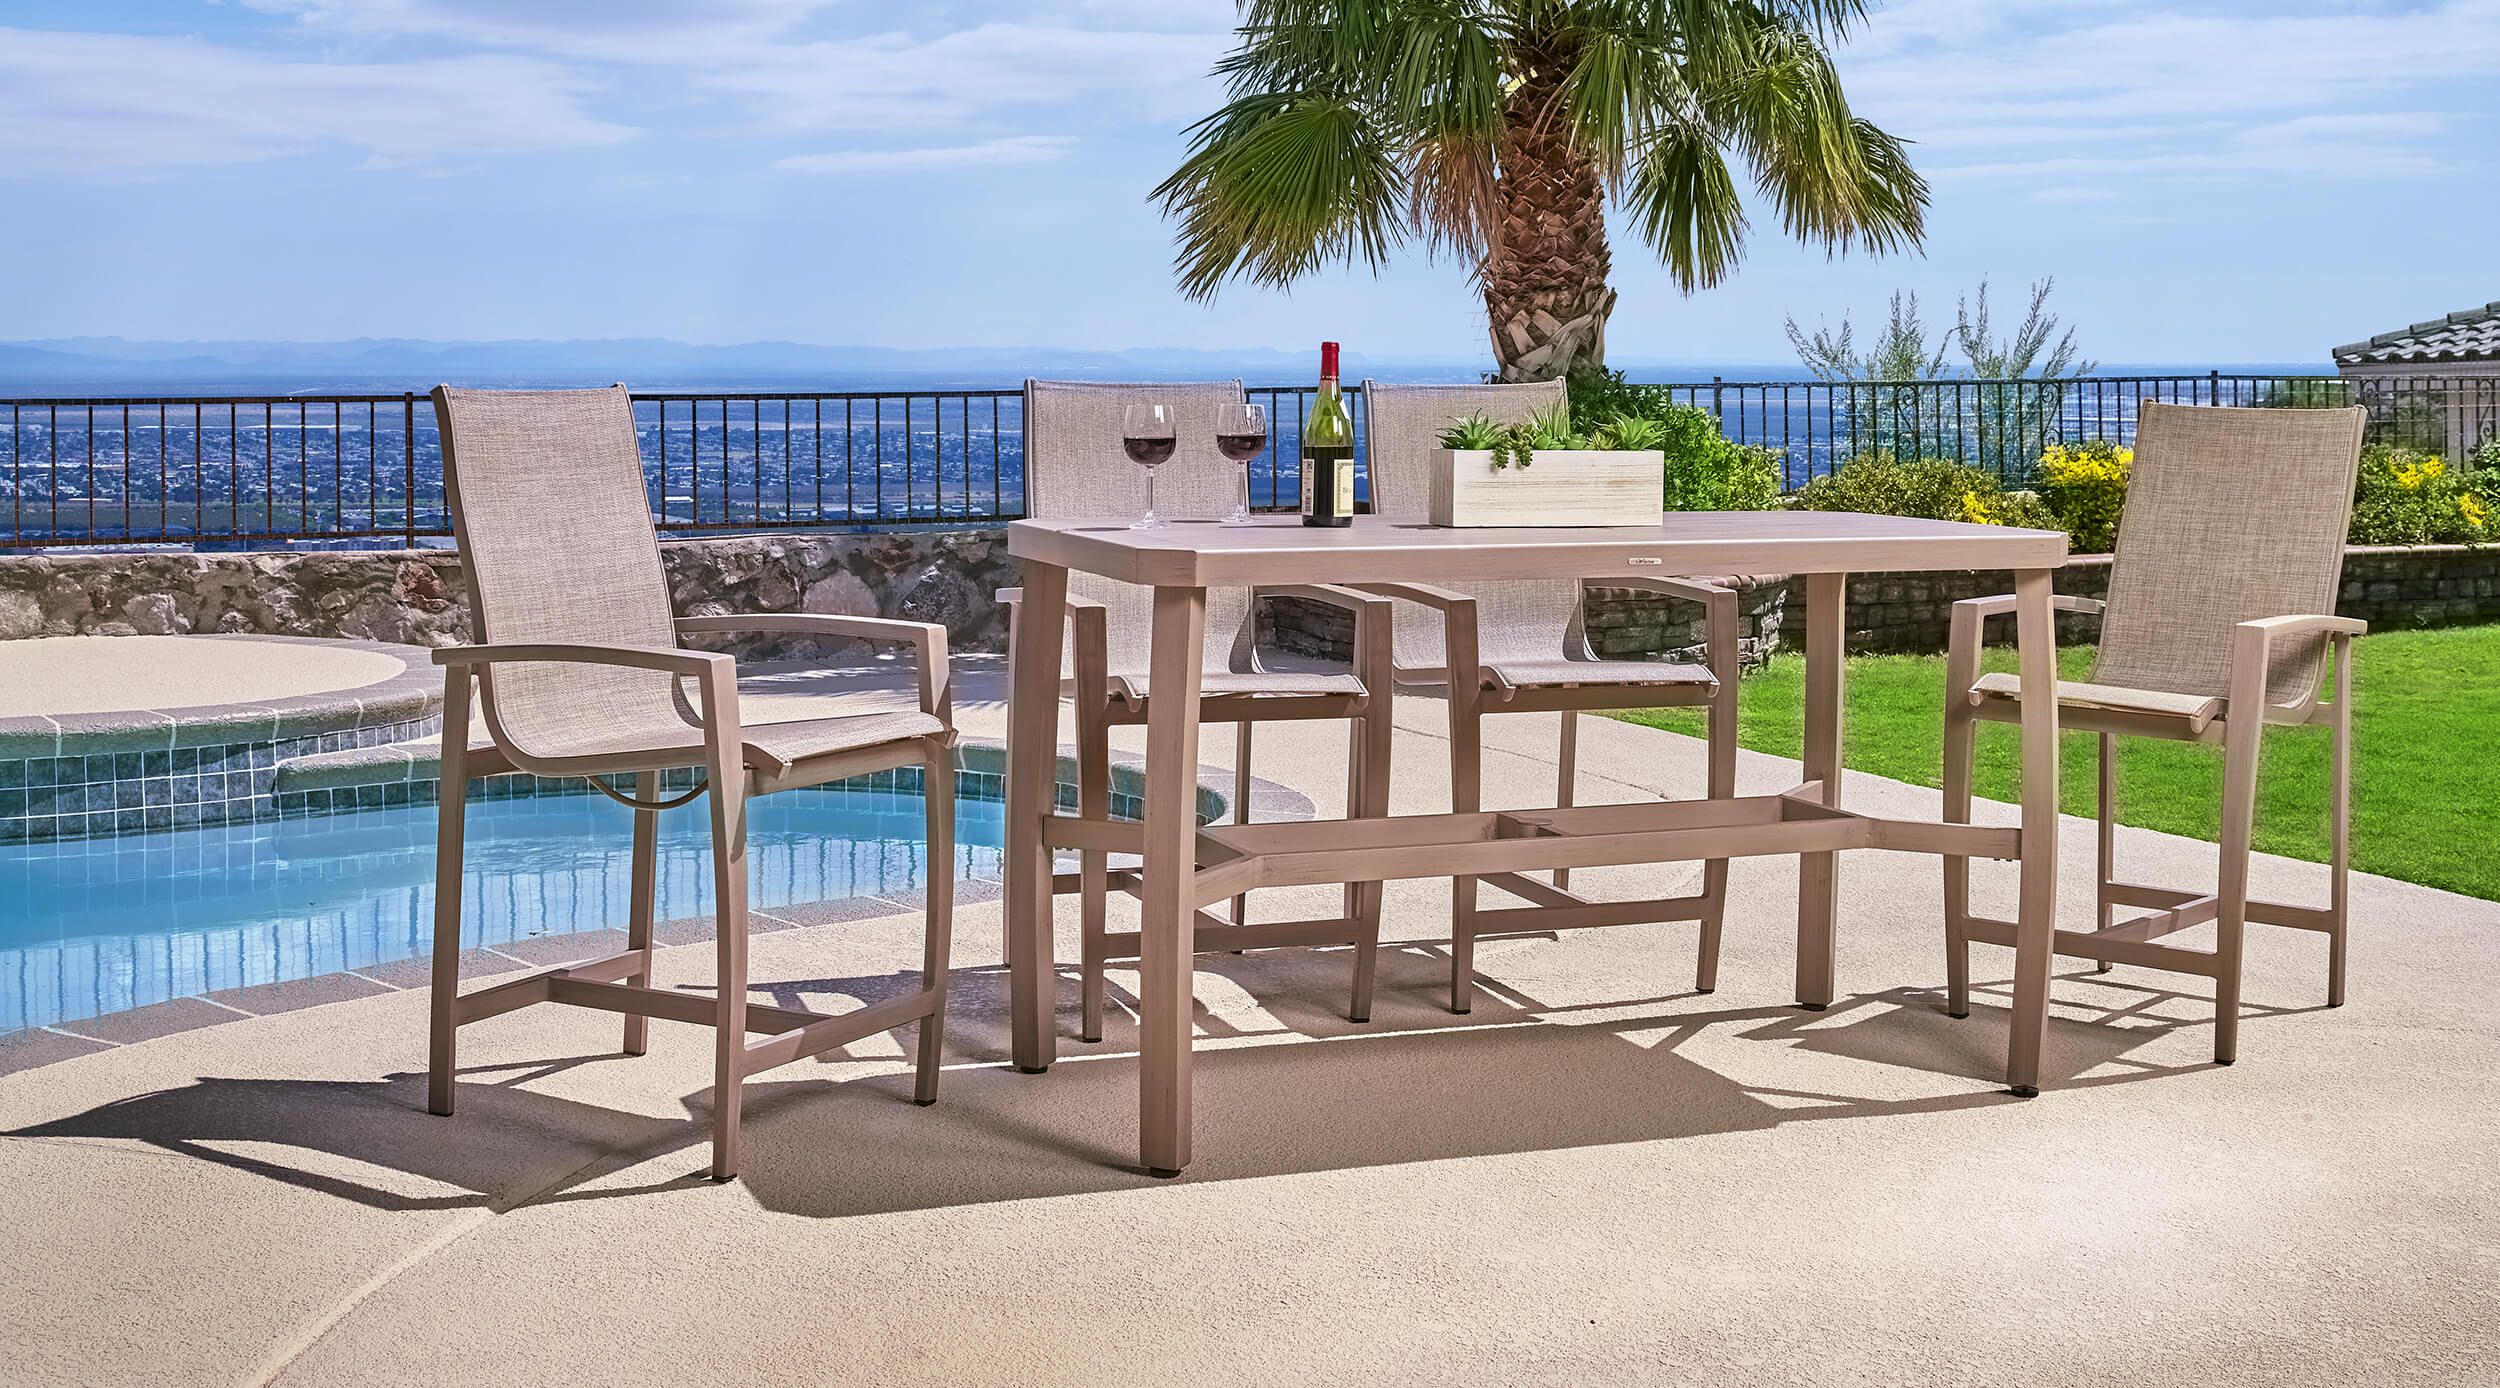 Luxury Outdoor Patio Furniture Winston Furniture - Outdoor Furniture Clearance Outlet Penrith